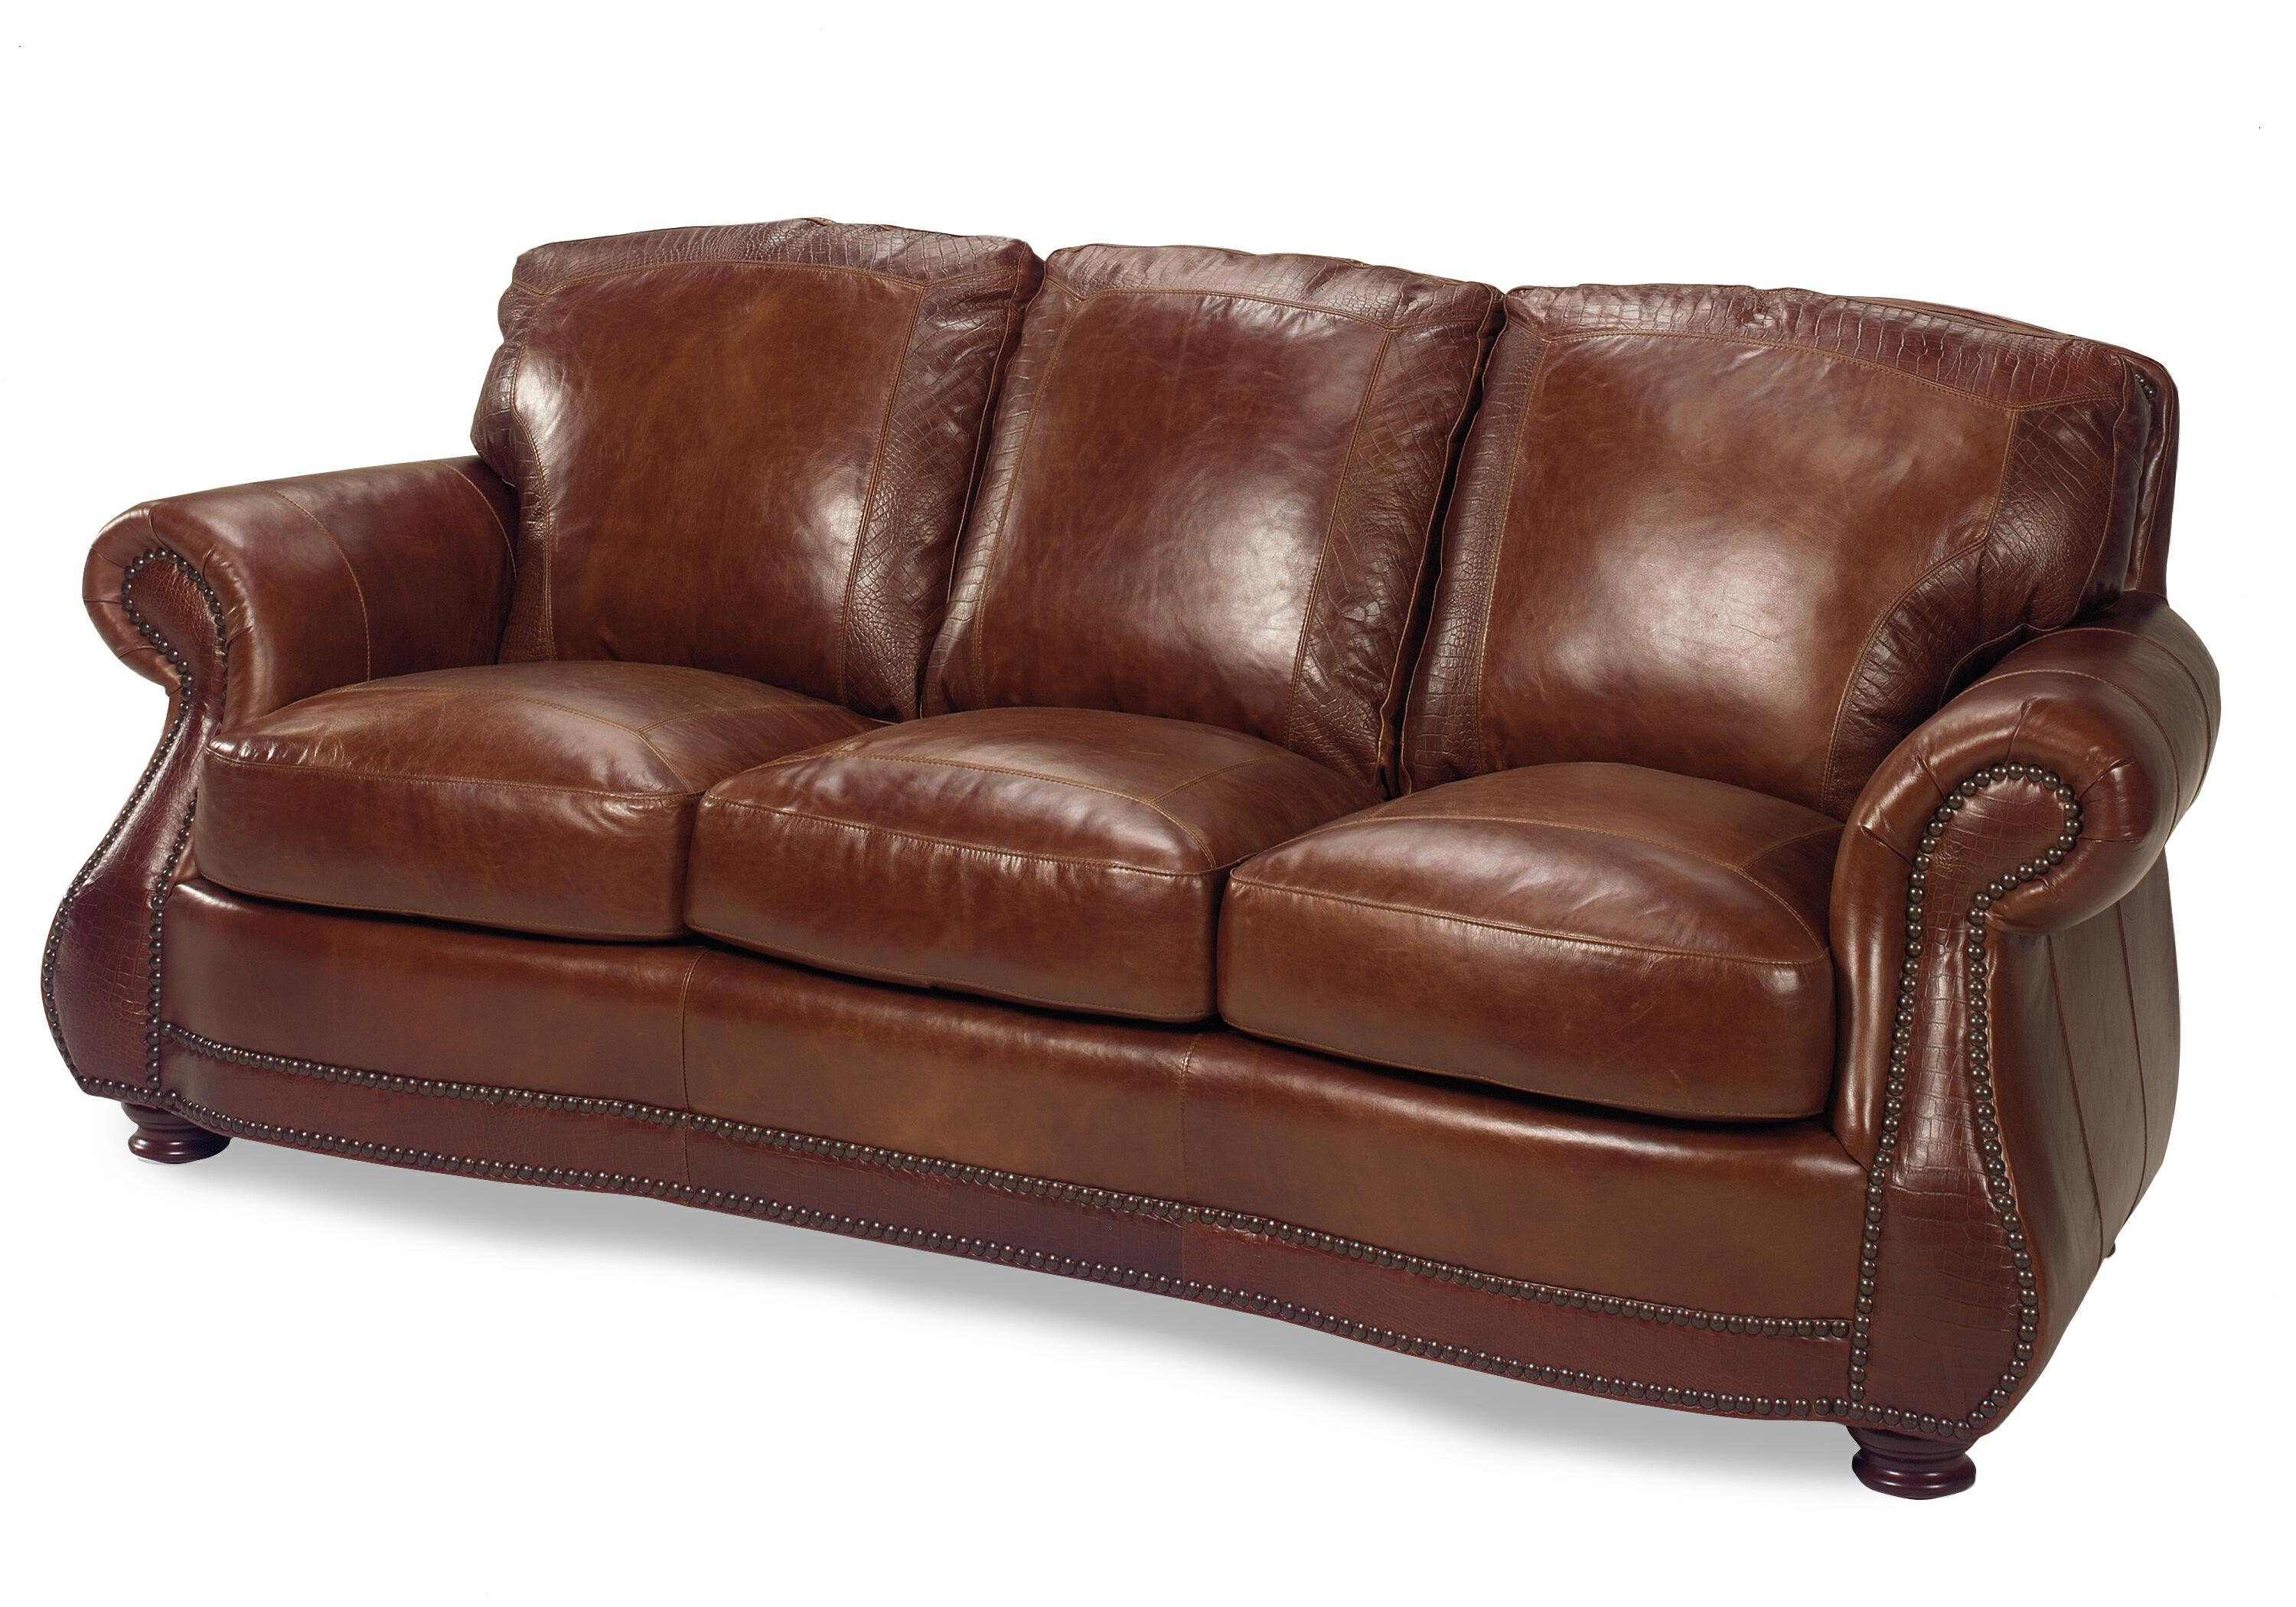 sofas and loveseats made in usa pull out sofa bed mattress premium leather 9055 traditional roll arm w